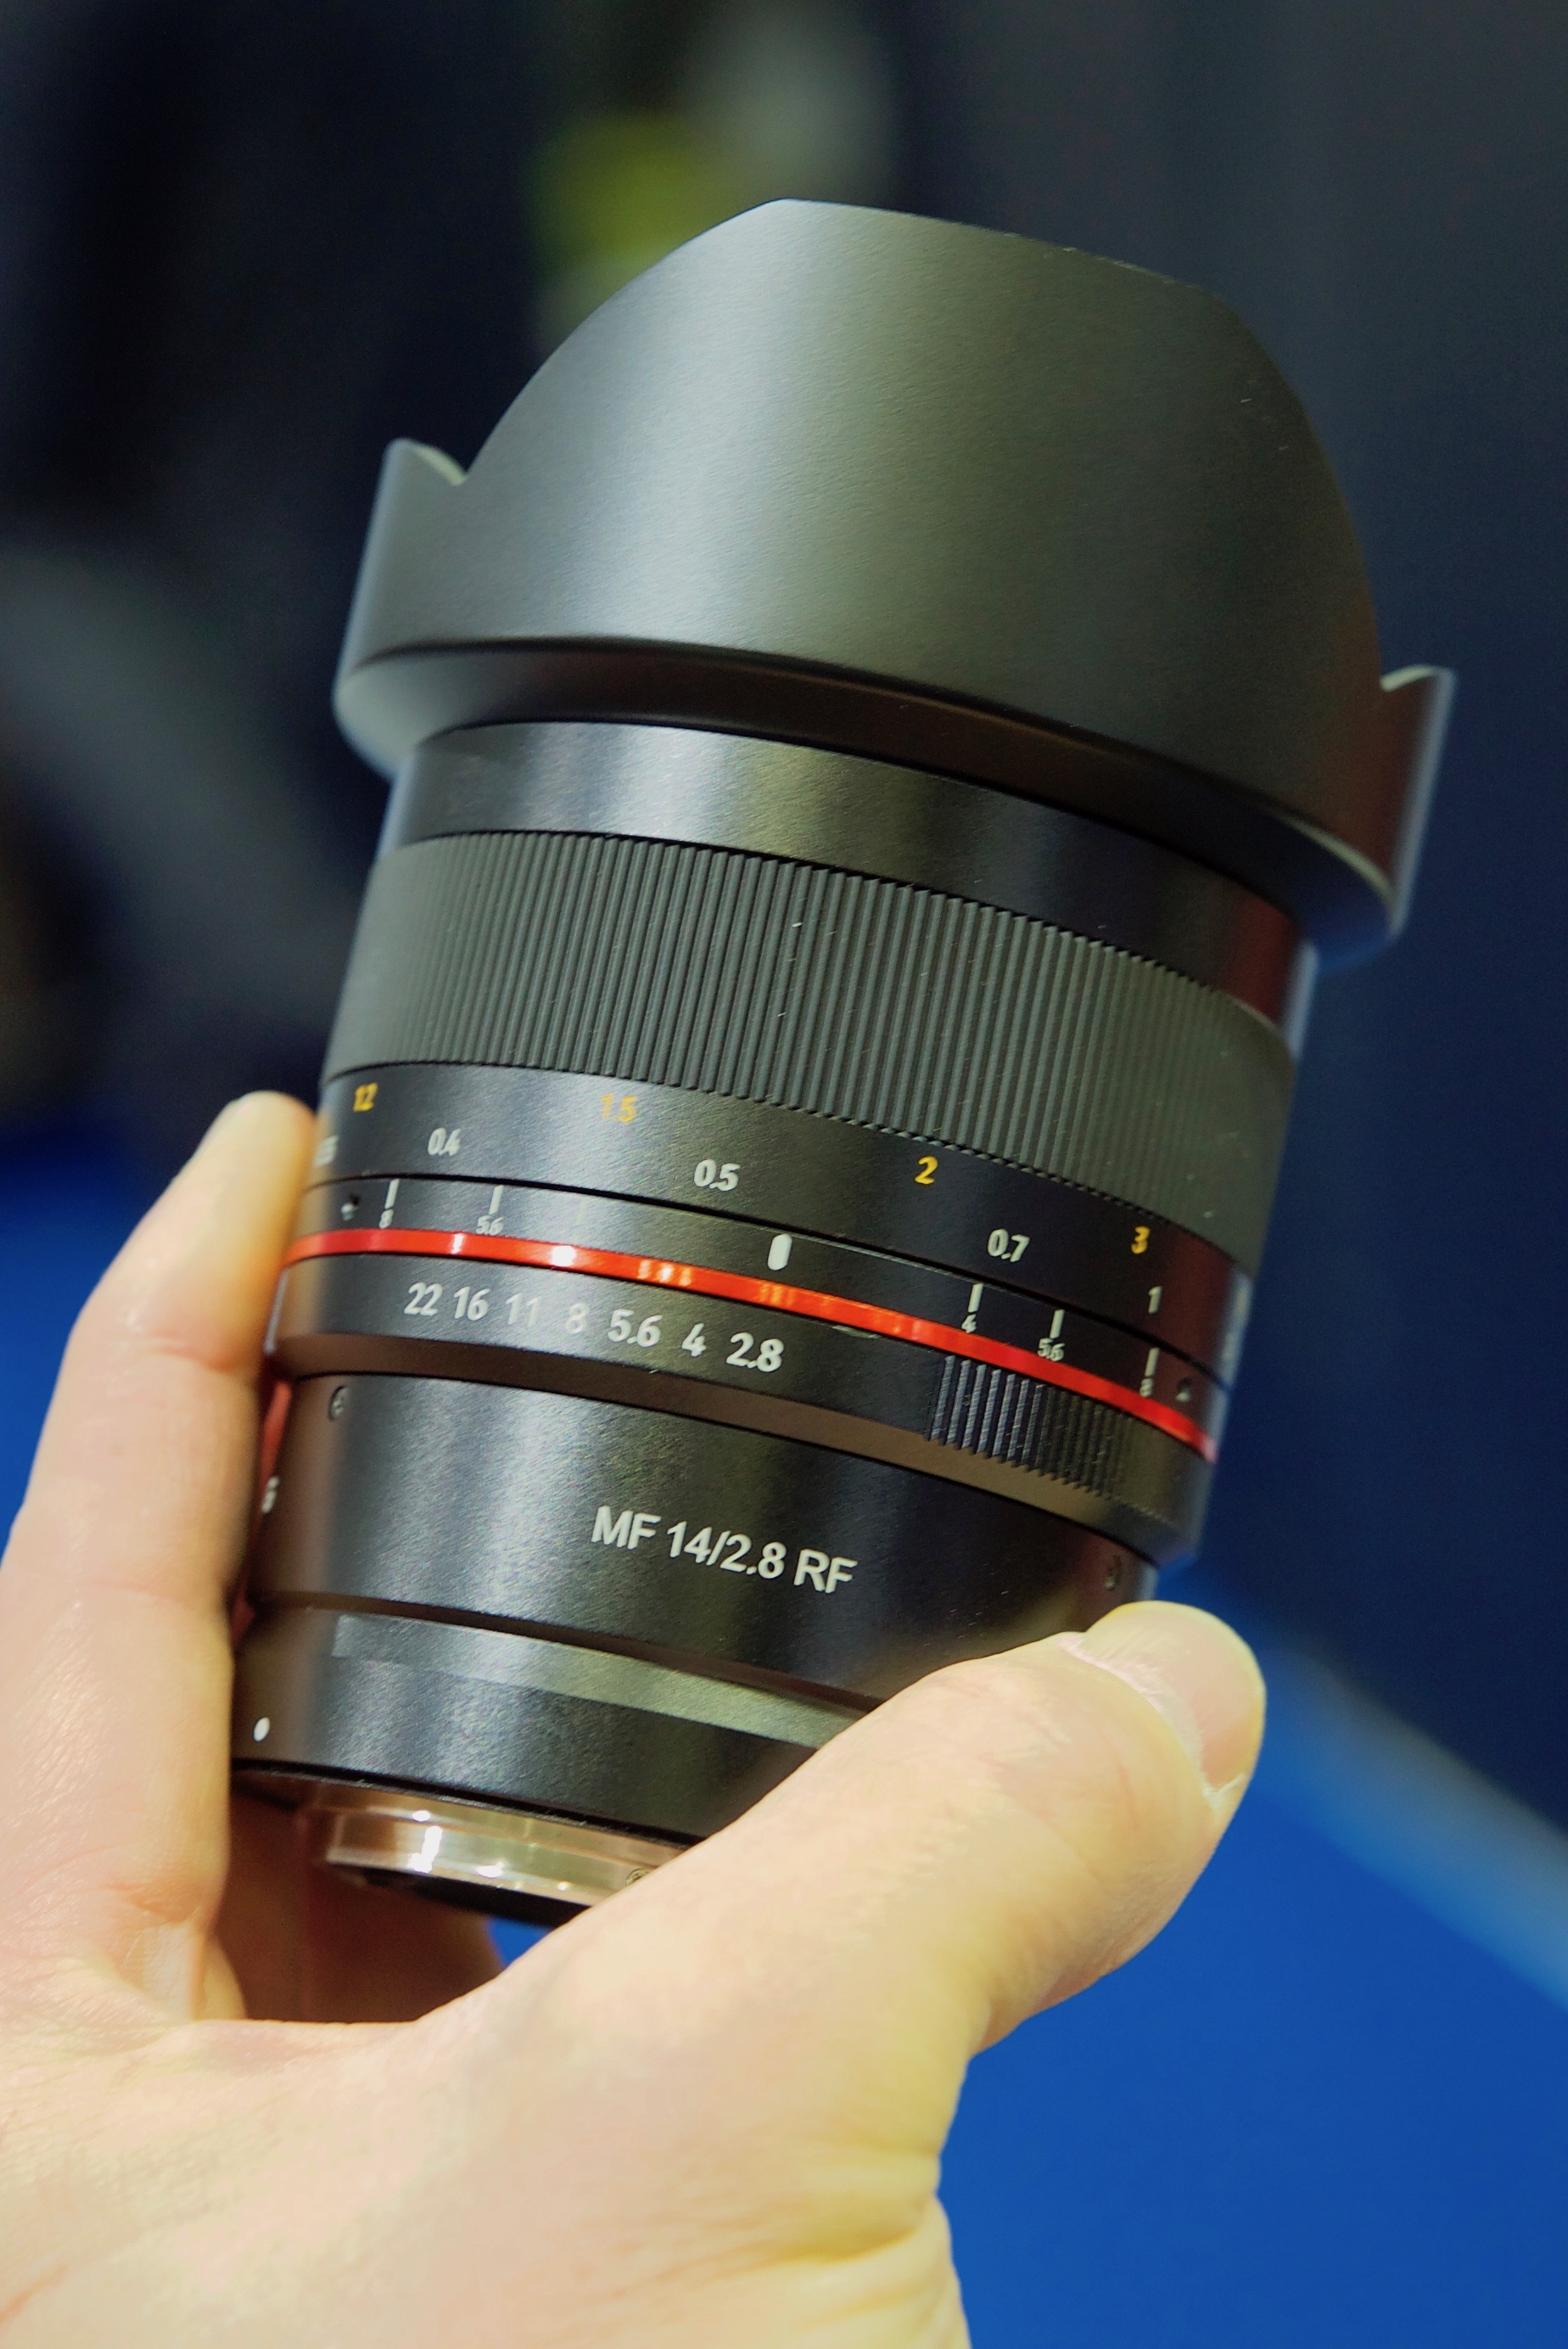 The New F1 Canna Cannova Is Set To Take Cannas To A New: Hands-on With The Samyang 85mm F1.4 & 14mm F2.8 Canon RF